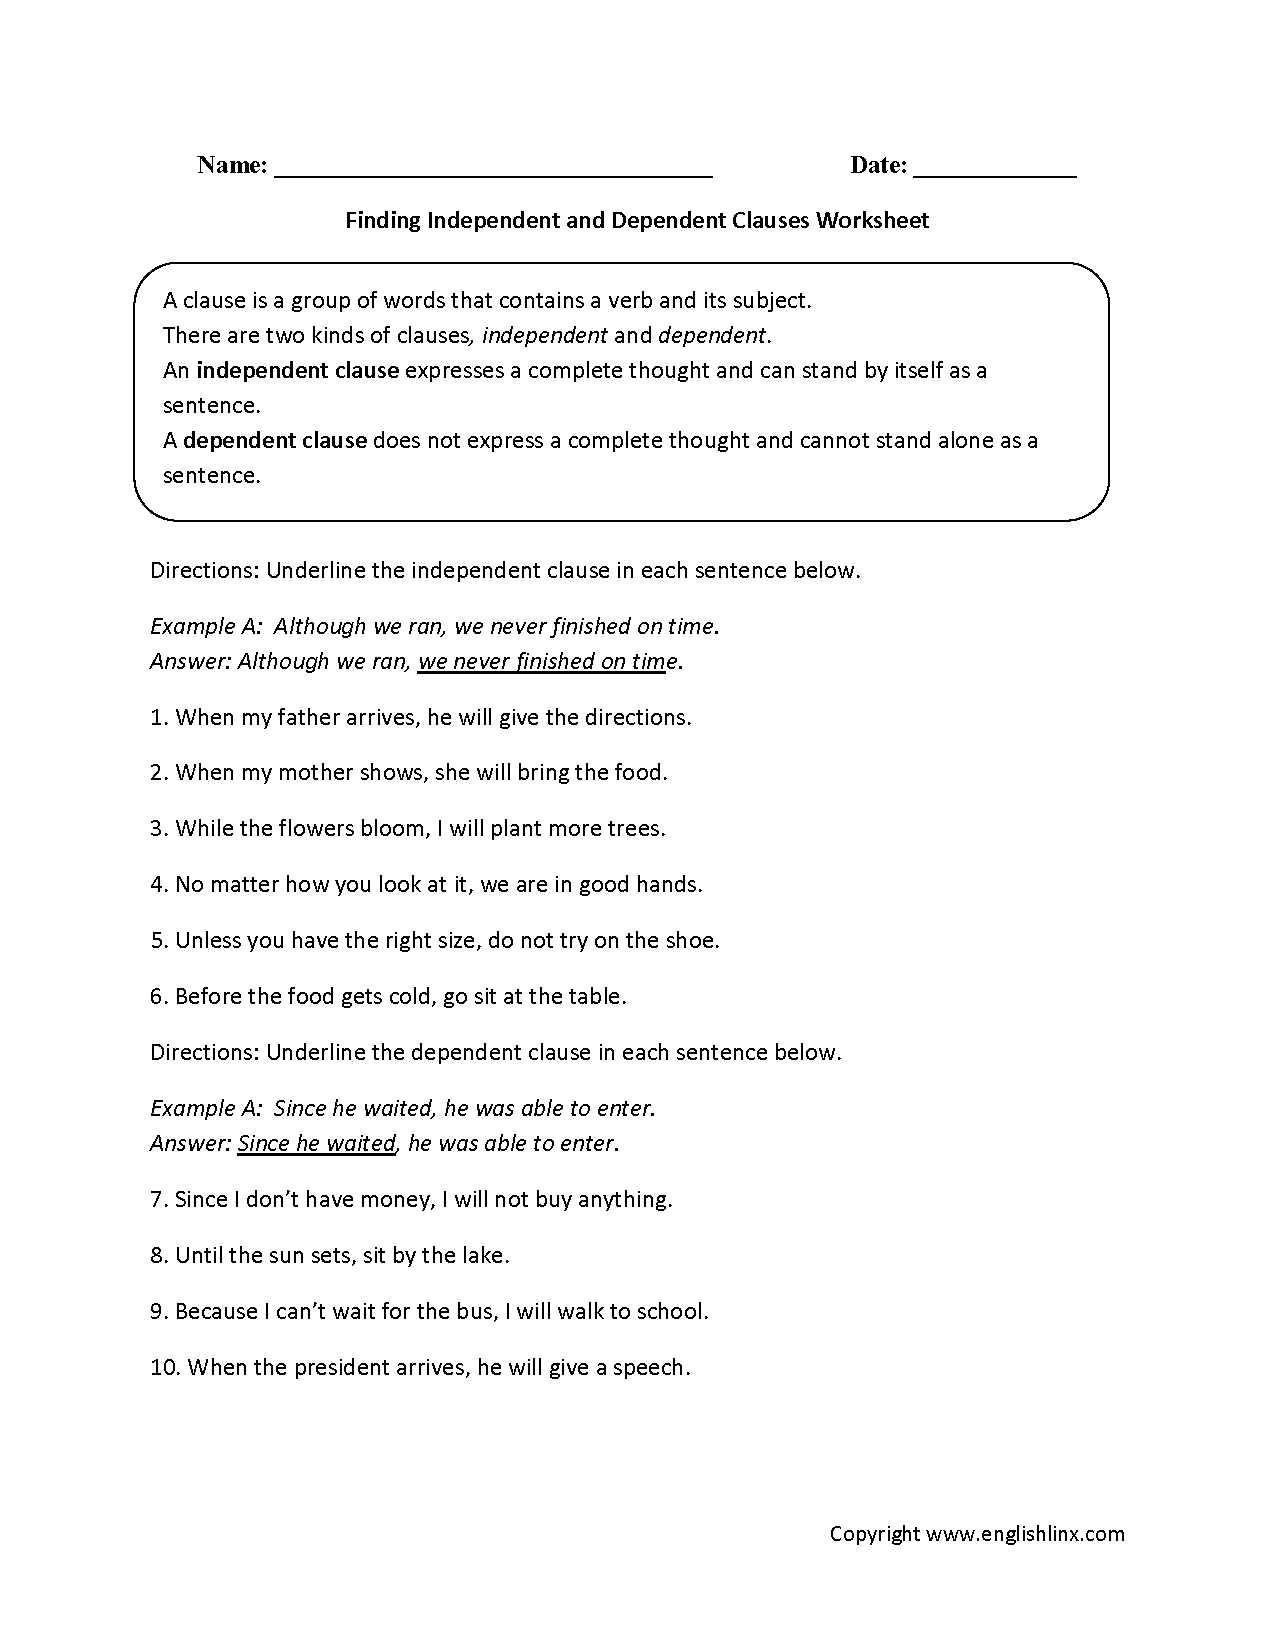 Clauses Worksheets Finding Independent And Dependent, Independent